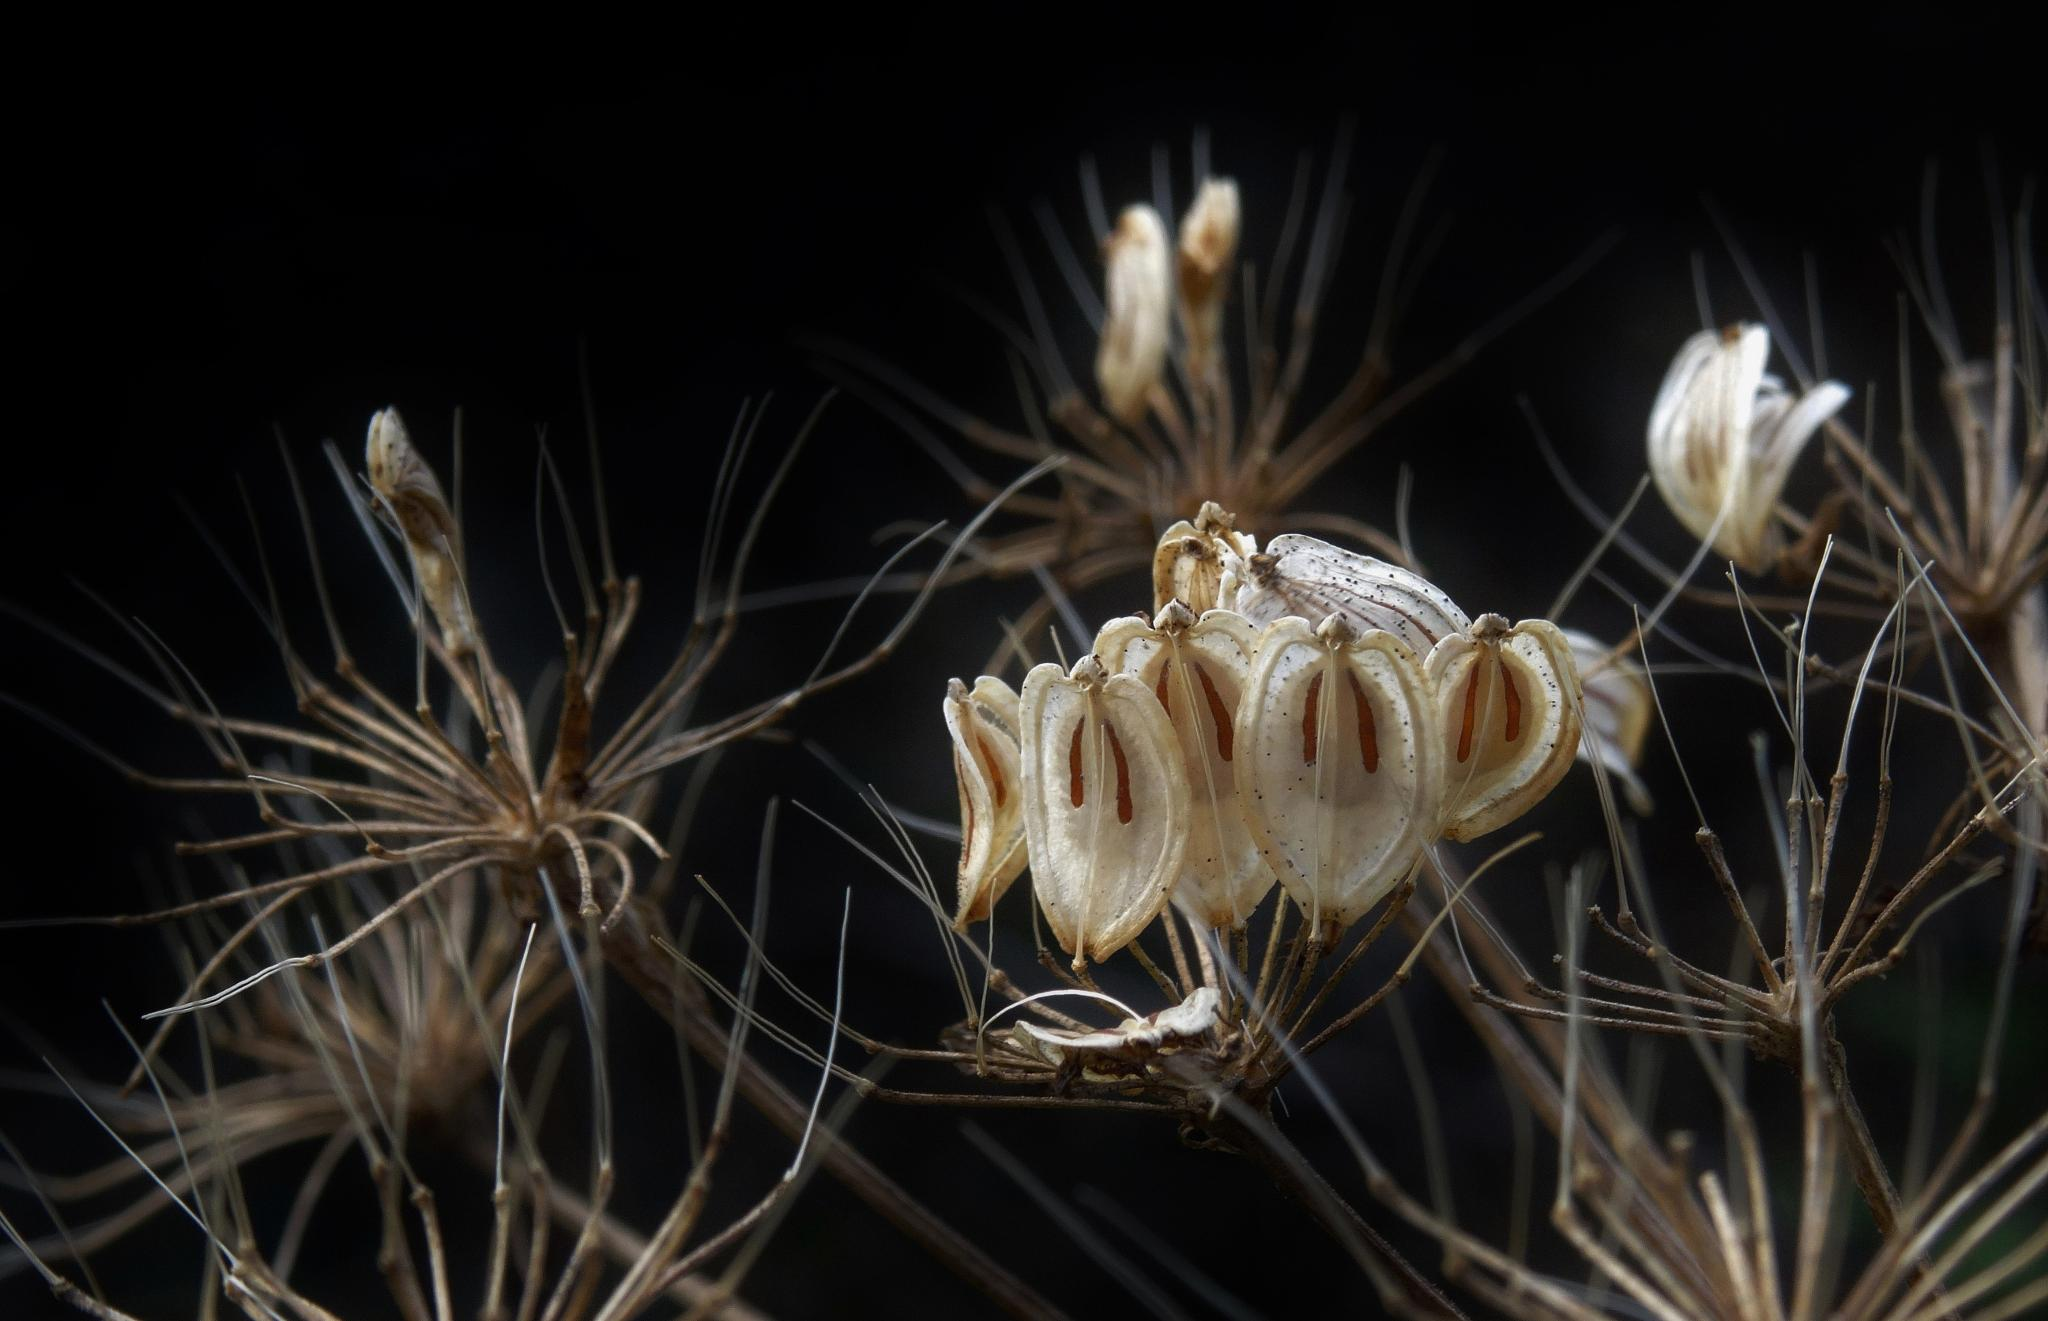 Wild Seed Heads by elizabeth.cooksey.3